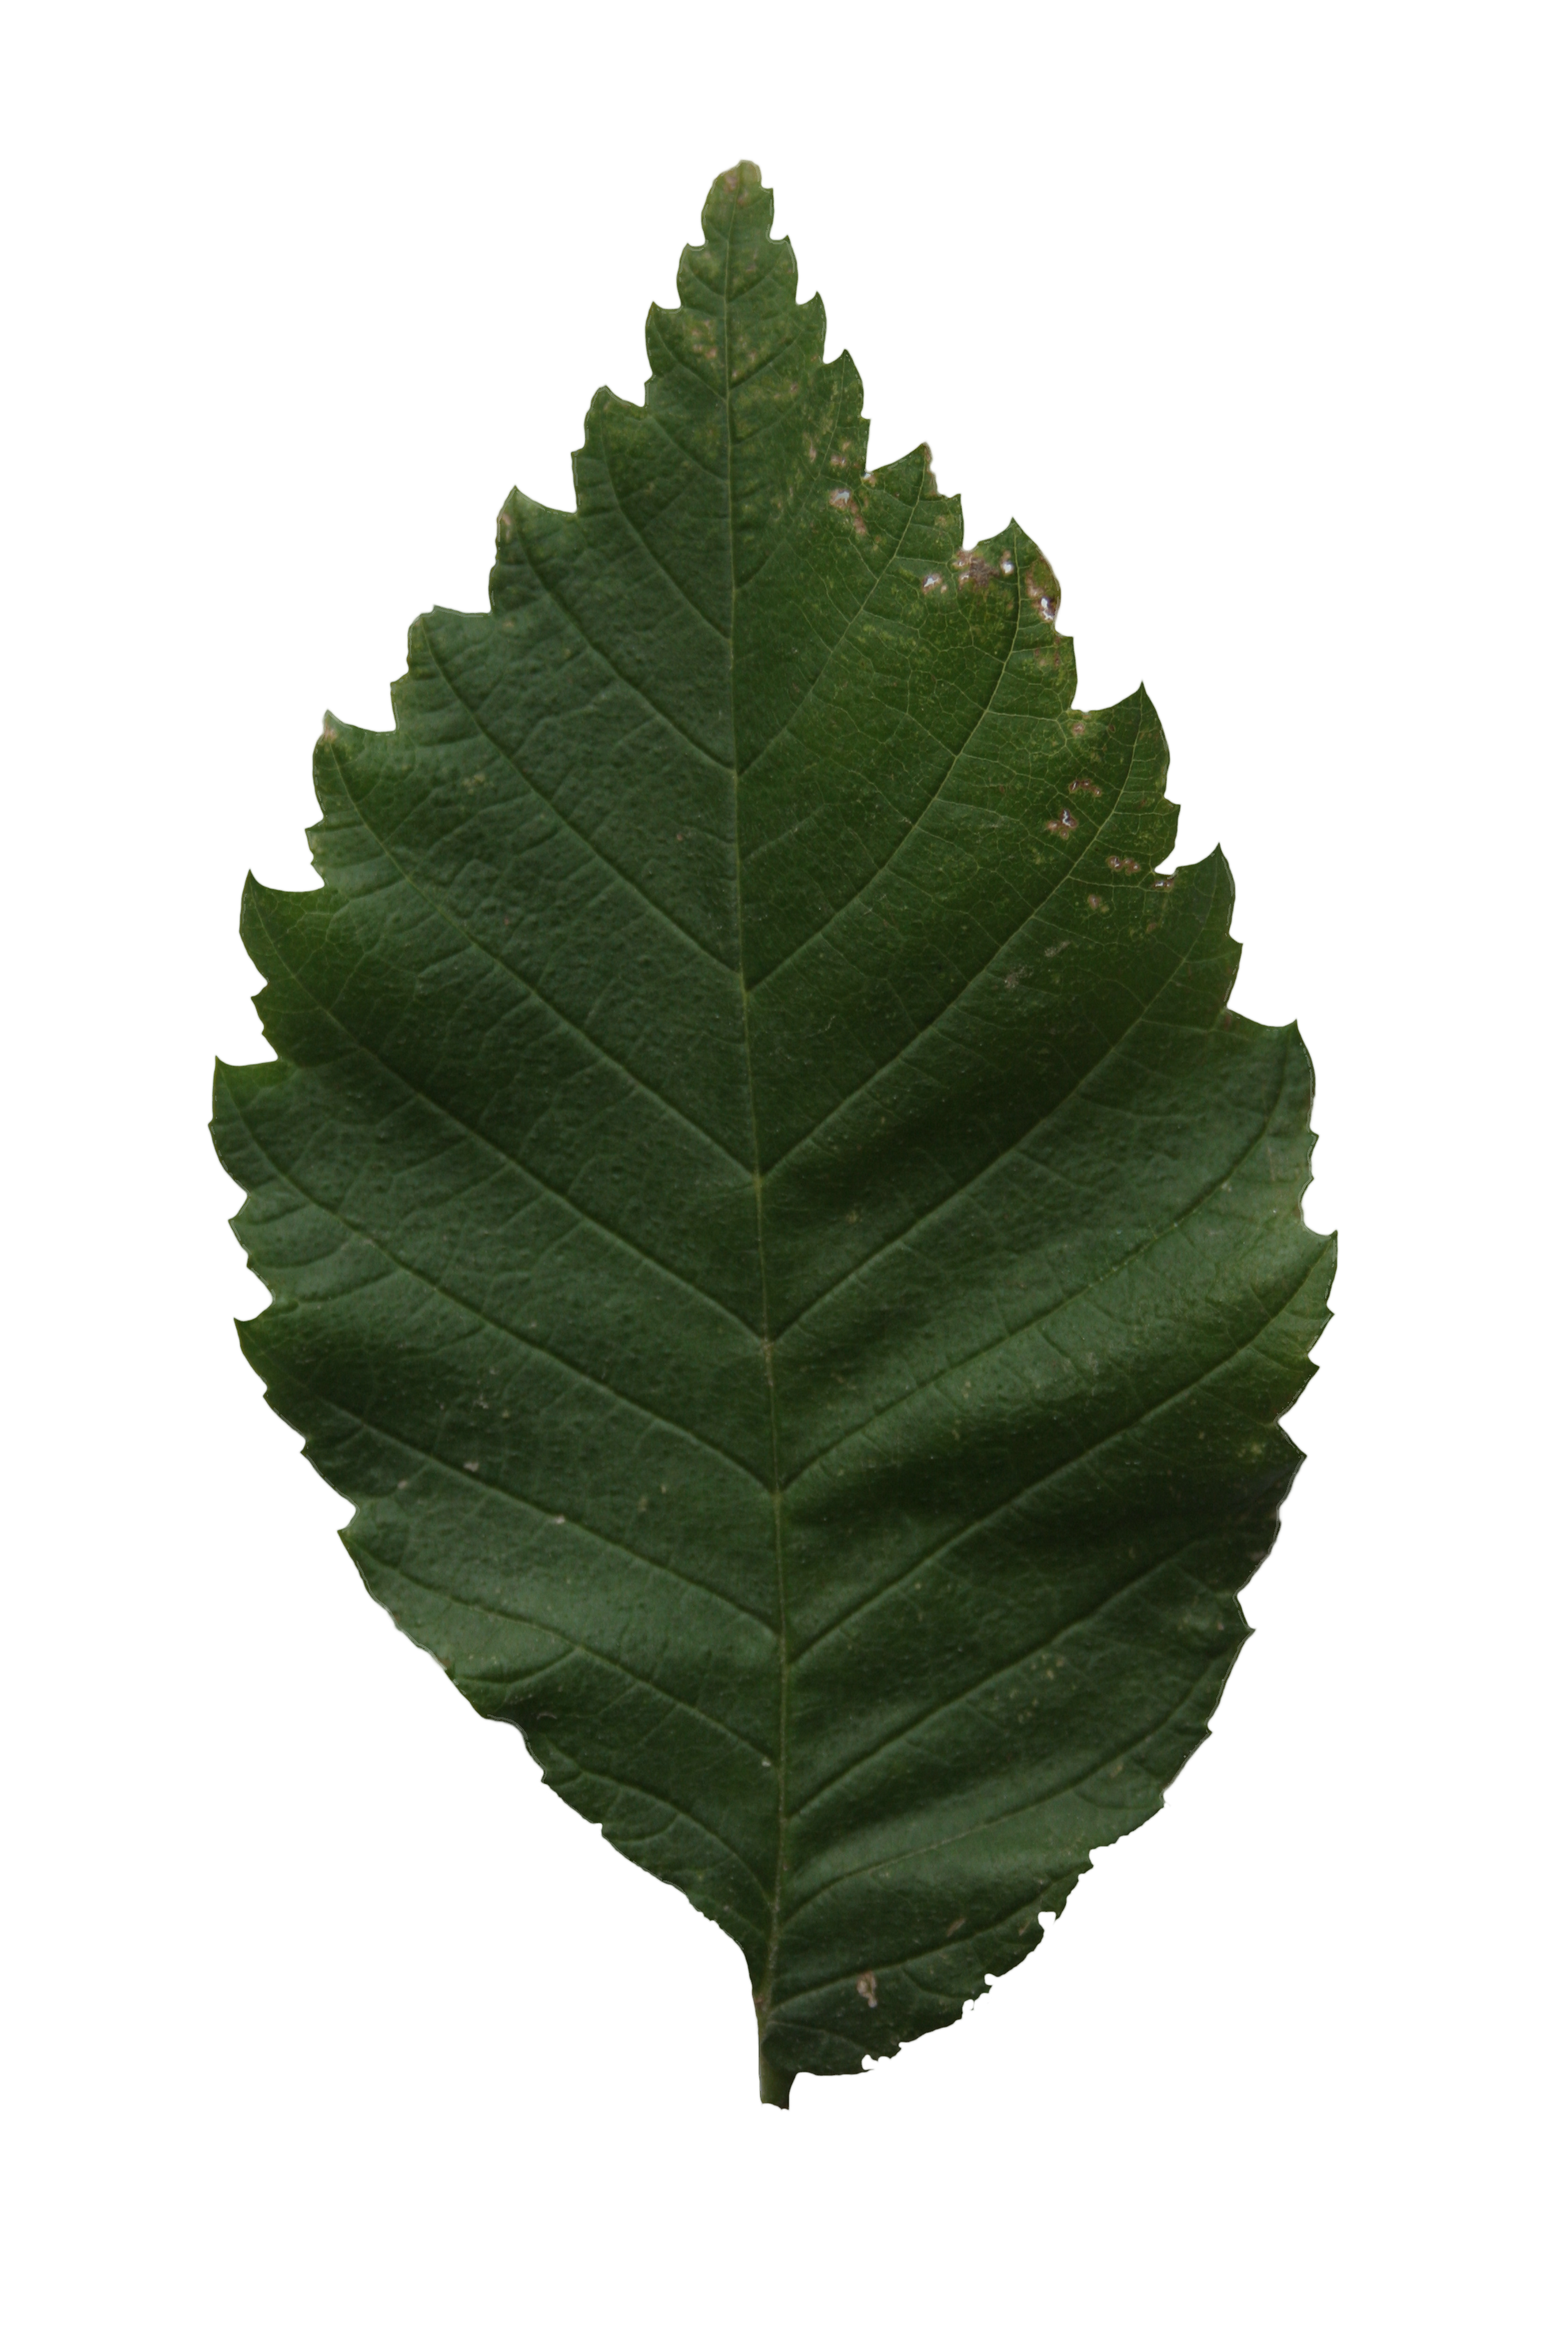 Leaf texture png. Hornbeam free cut out